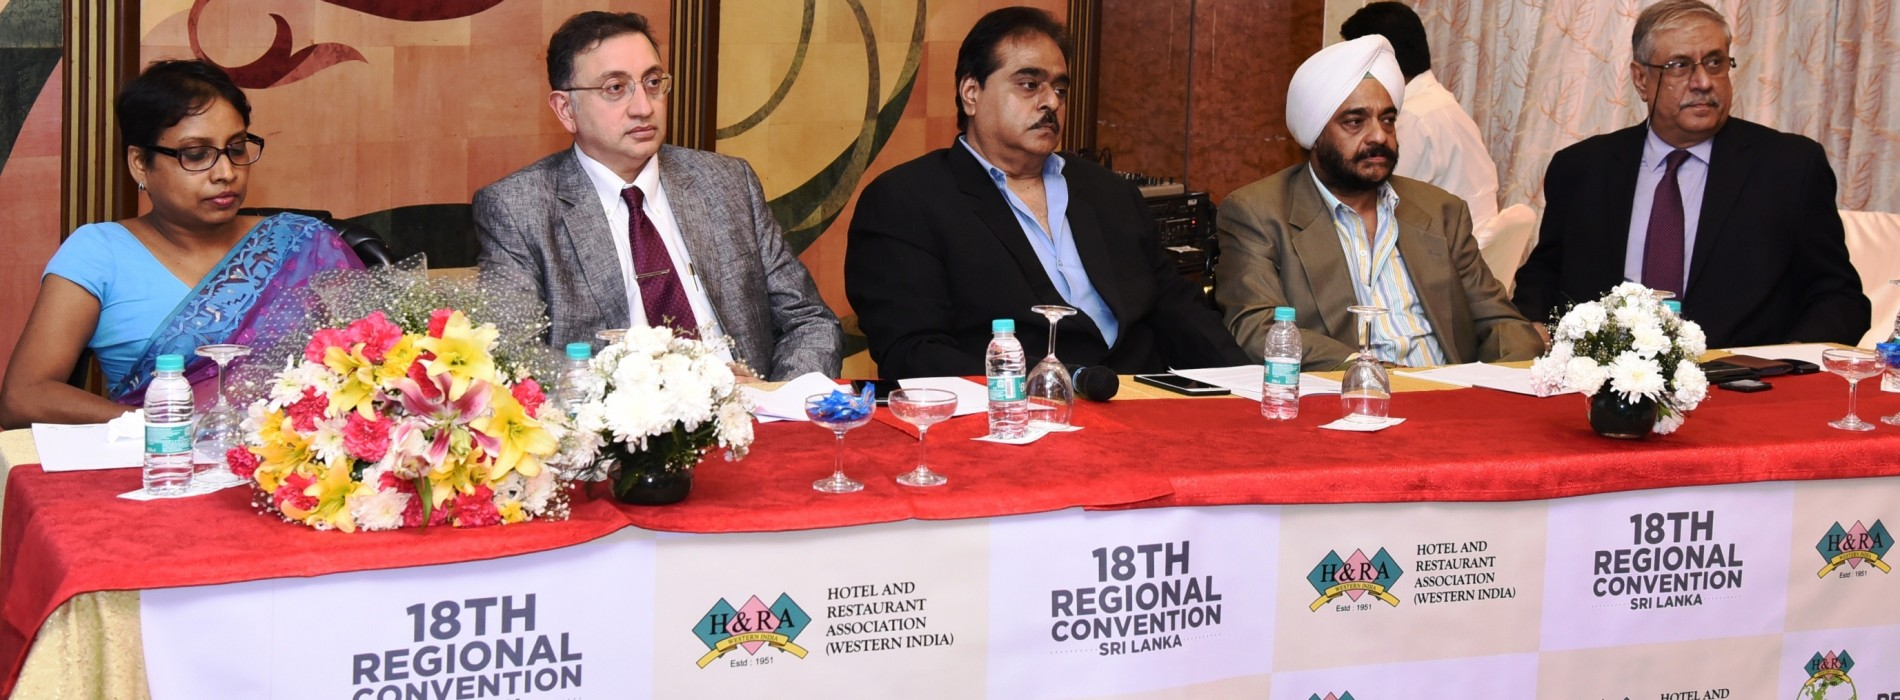 Indo-Sri Lanka rendezvous at HRAWI's 18th Regional Convention to open new avenues in hospitality